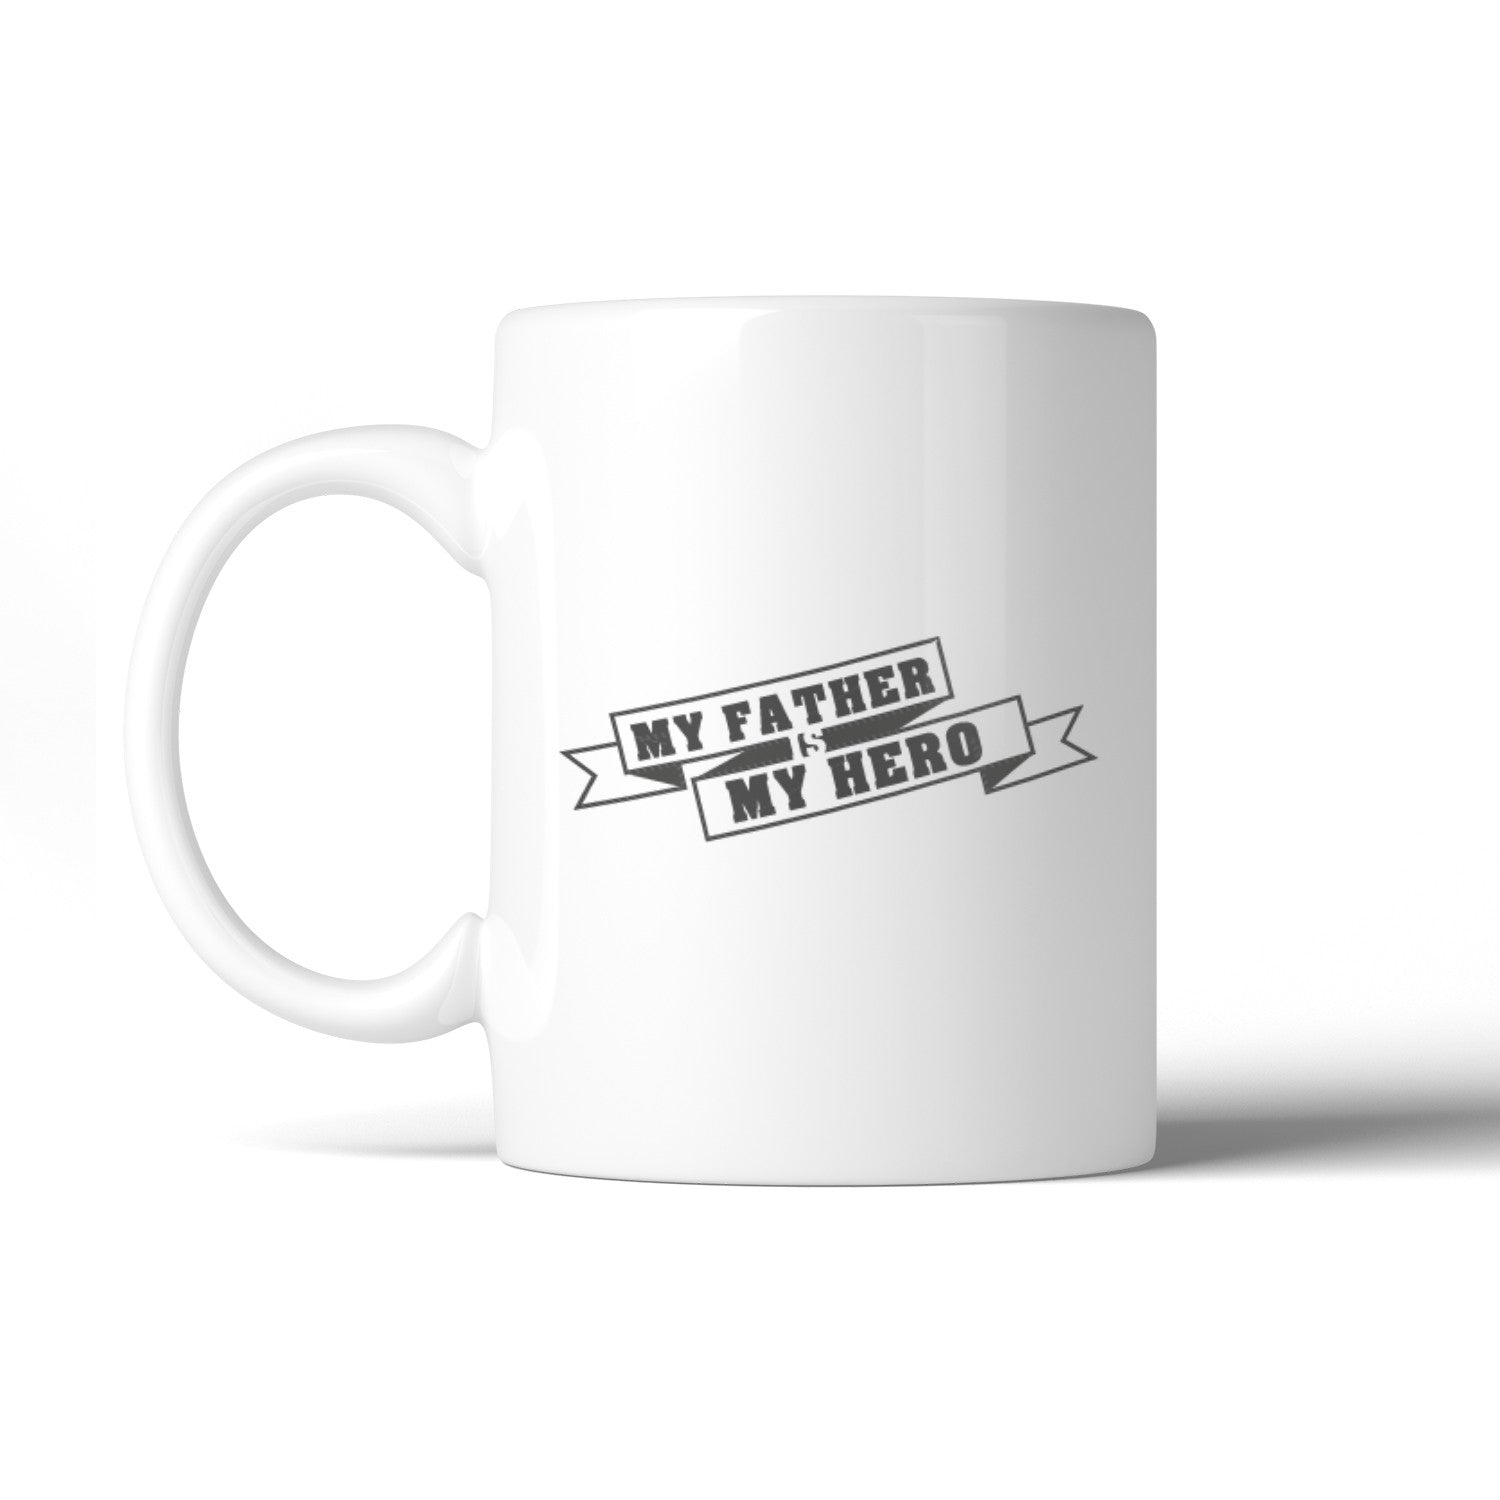 My Father Hero Unique Design Gift Mug For Dad Birthday